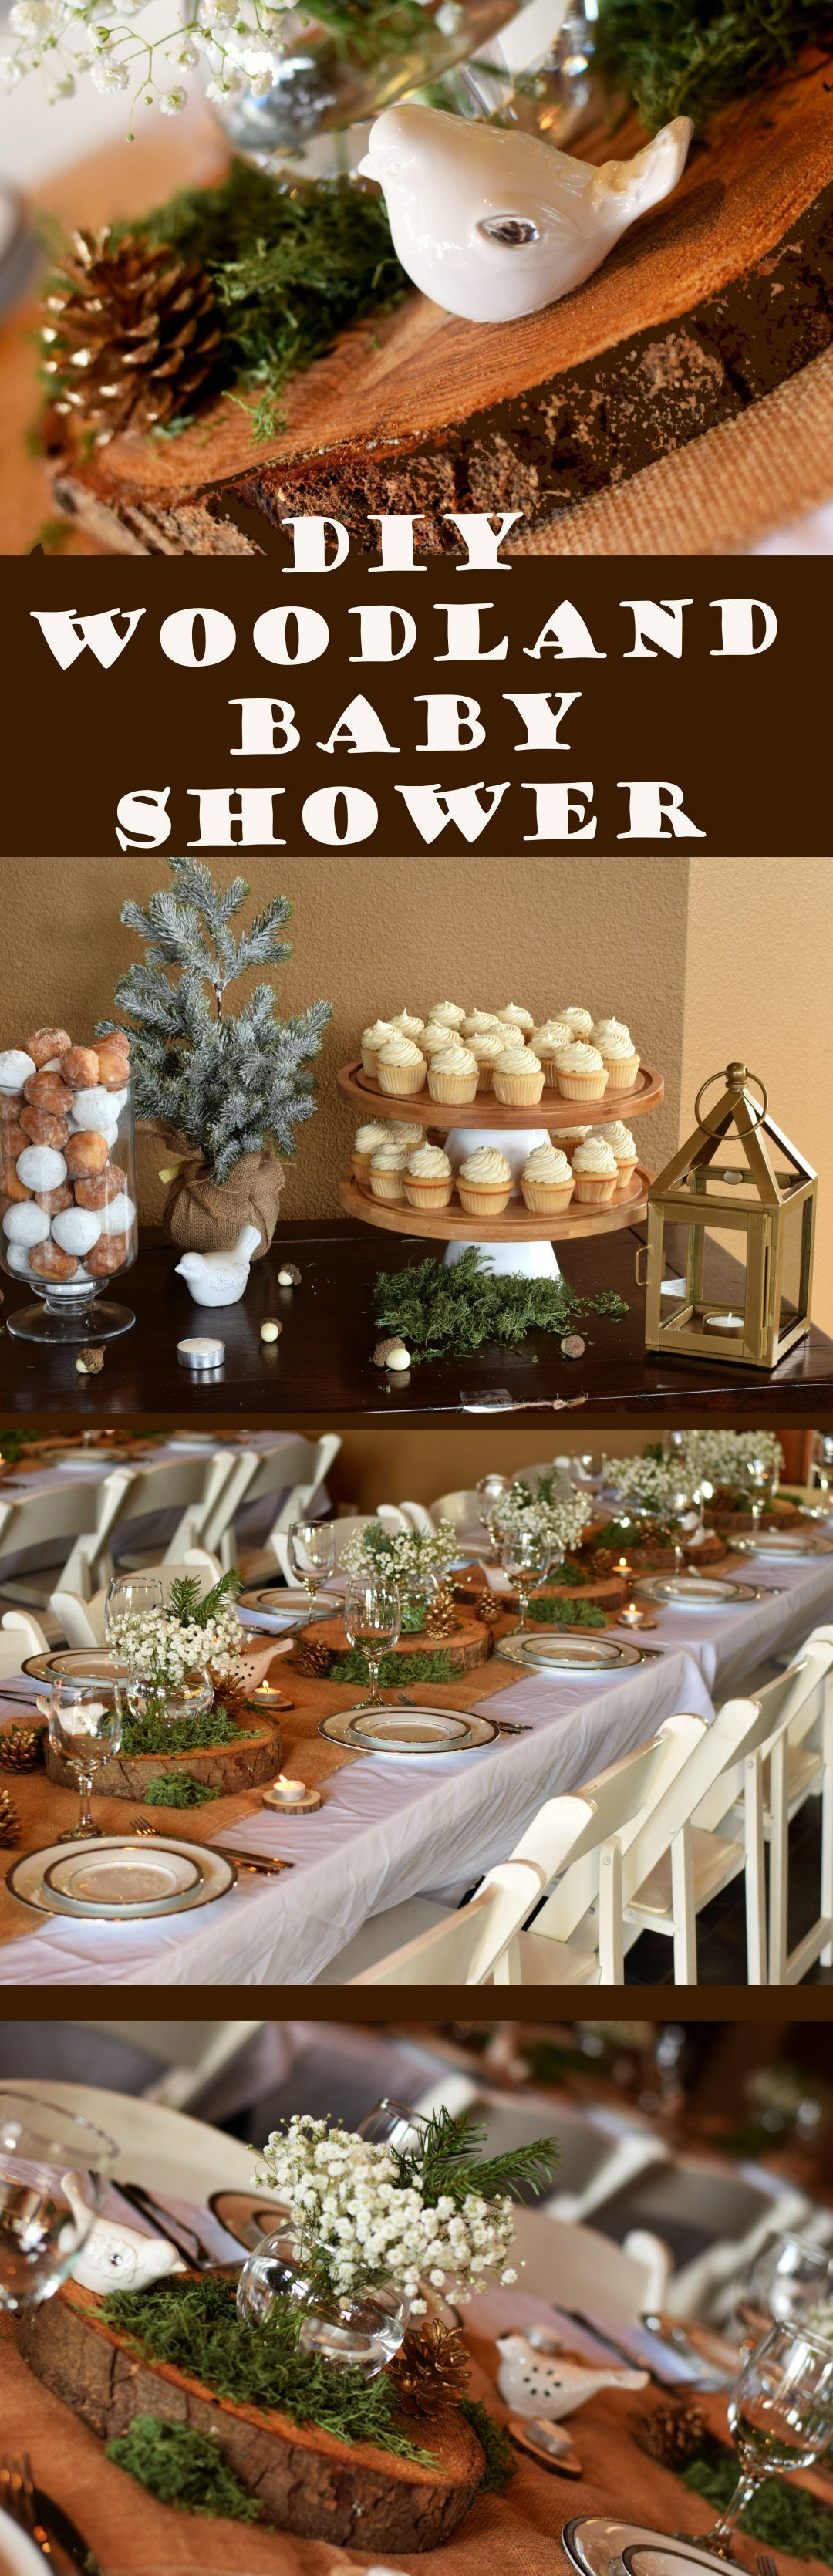 Baby Shower Ideas: How To Throw An Amazing DIY Woodland Baby Shower